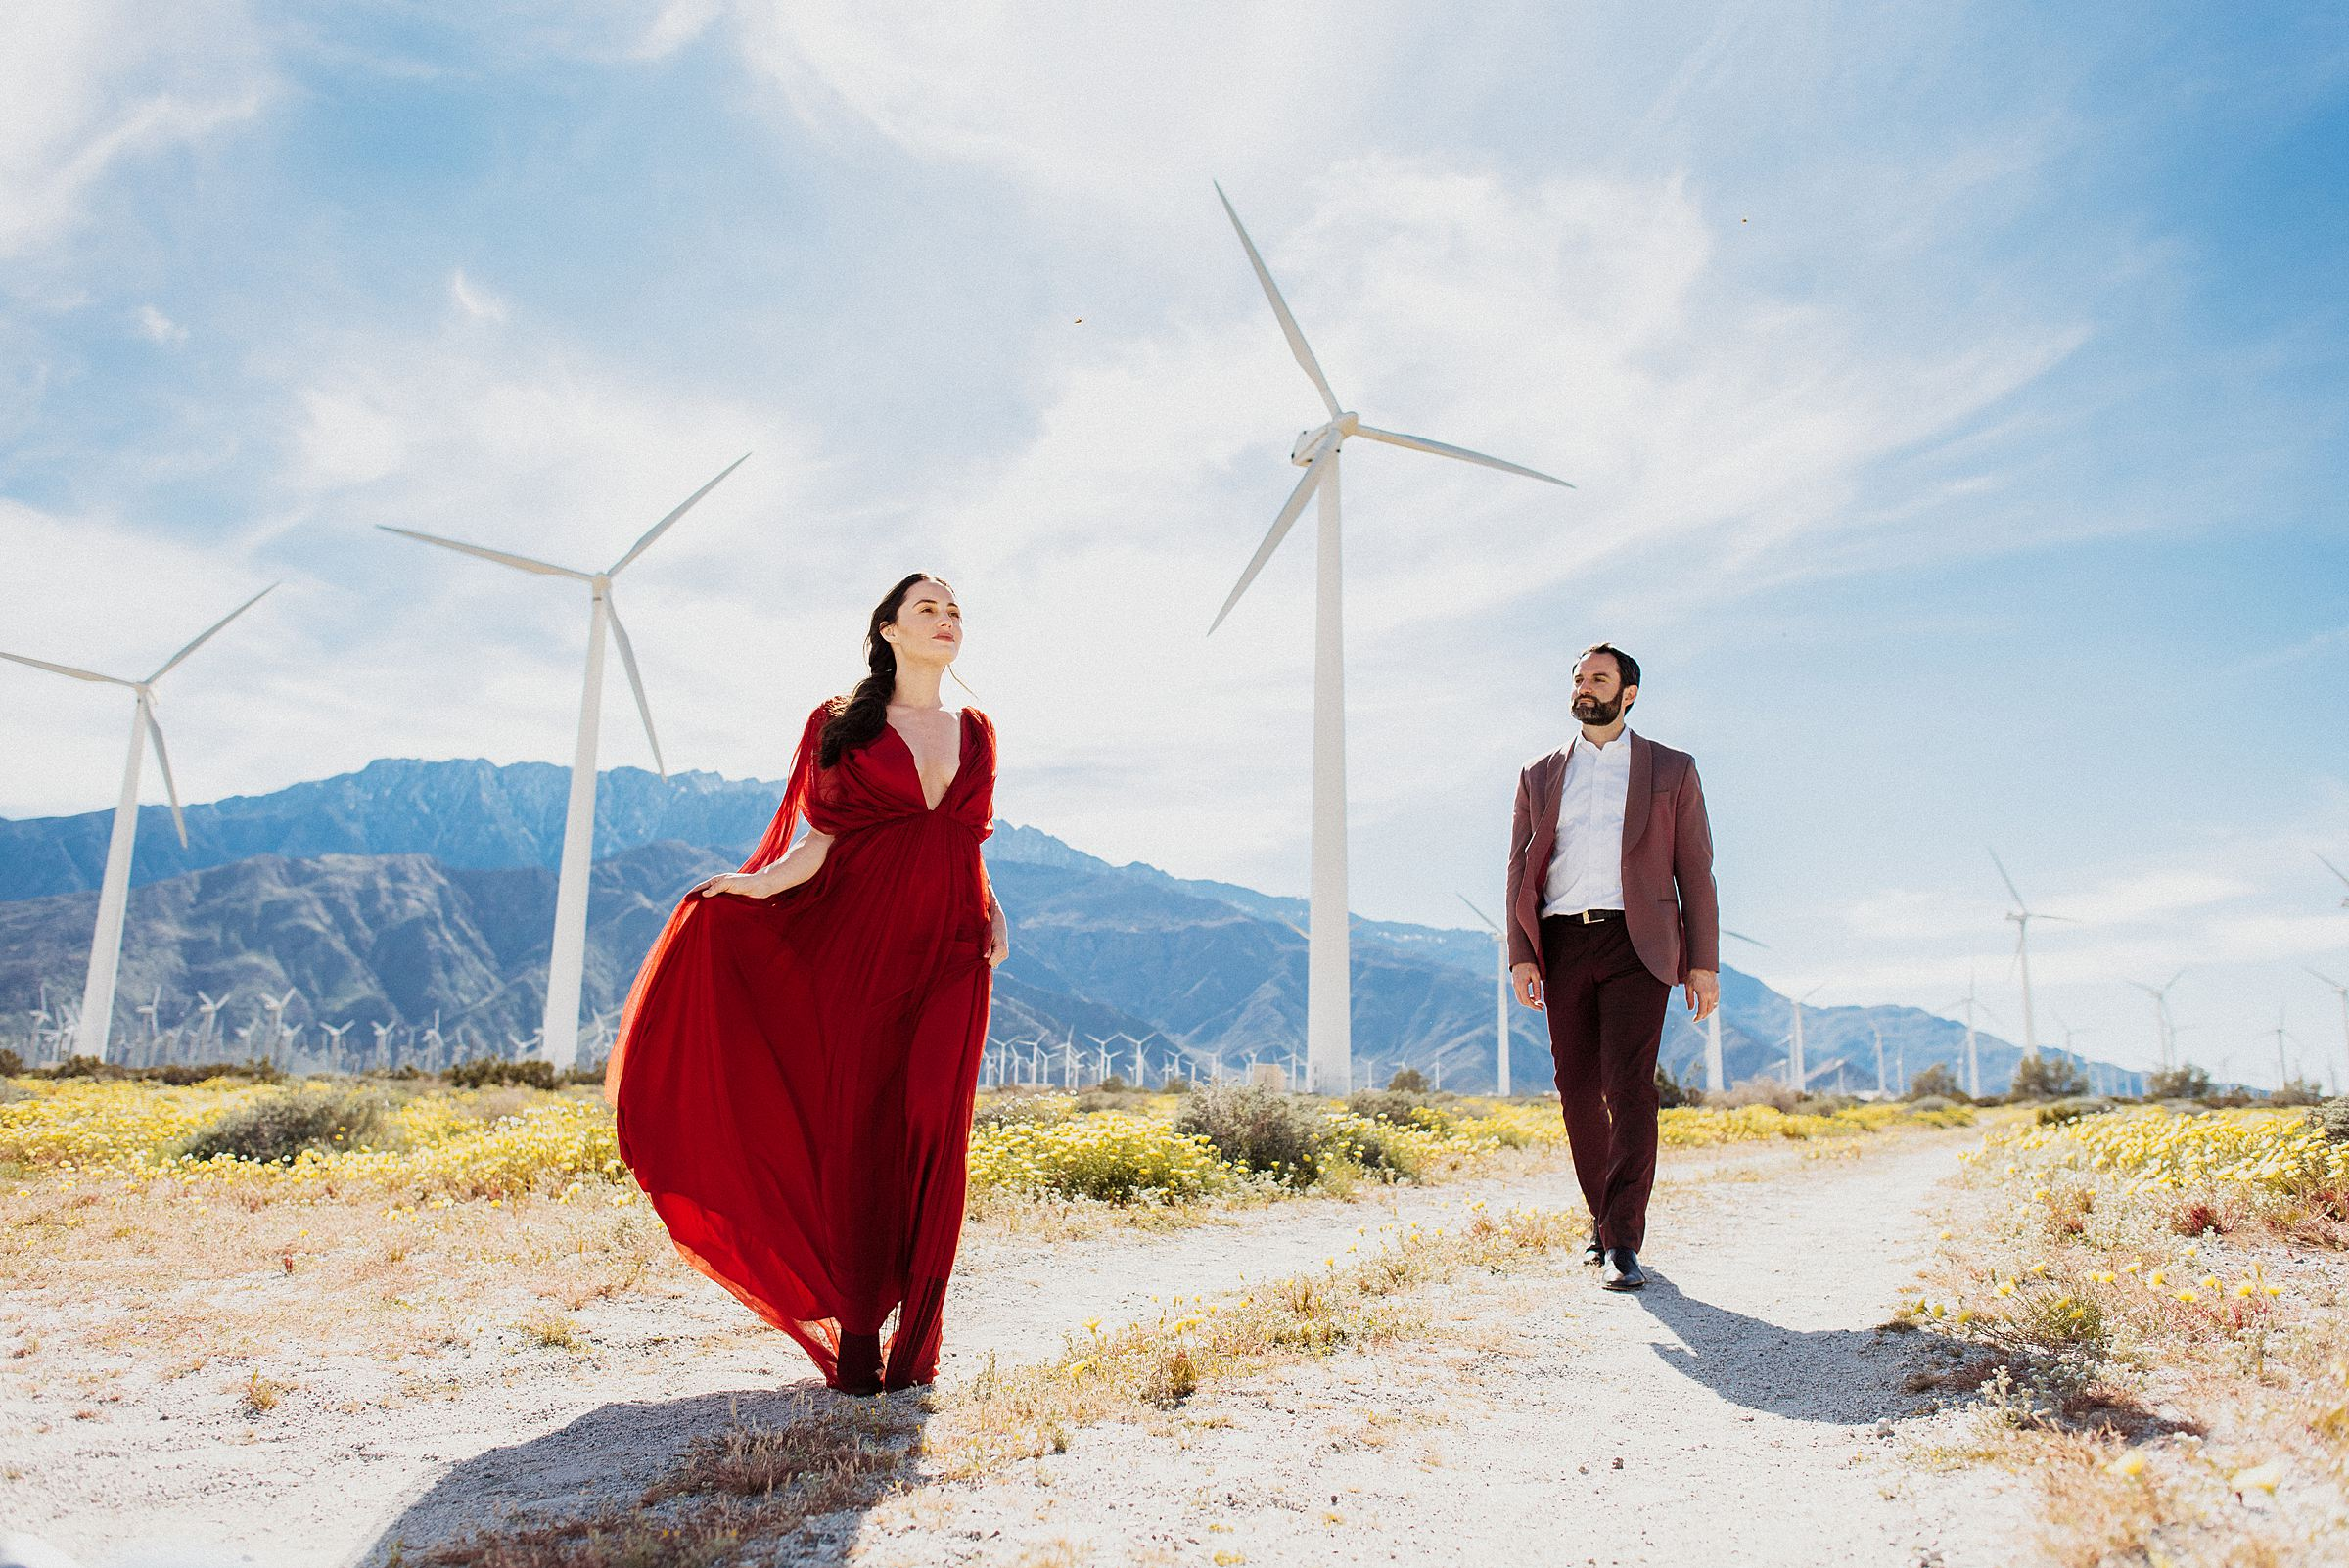 engagement session at palm springs windmills